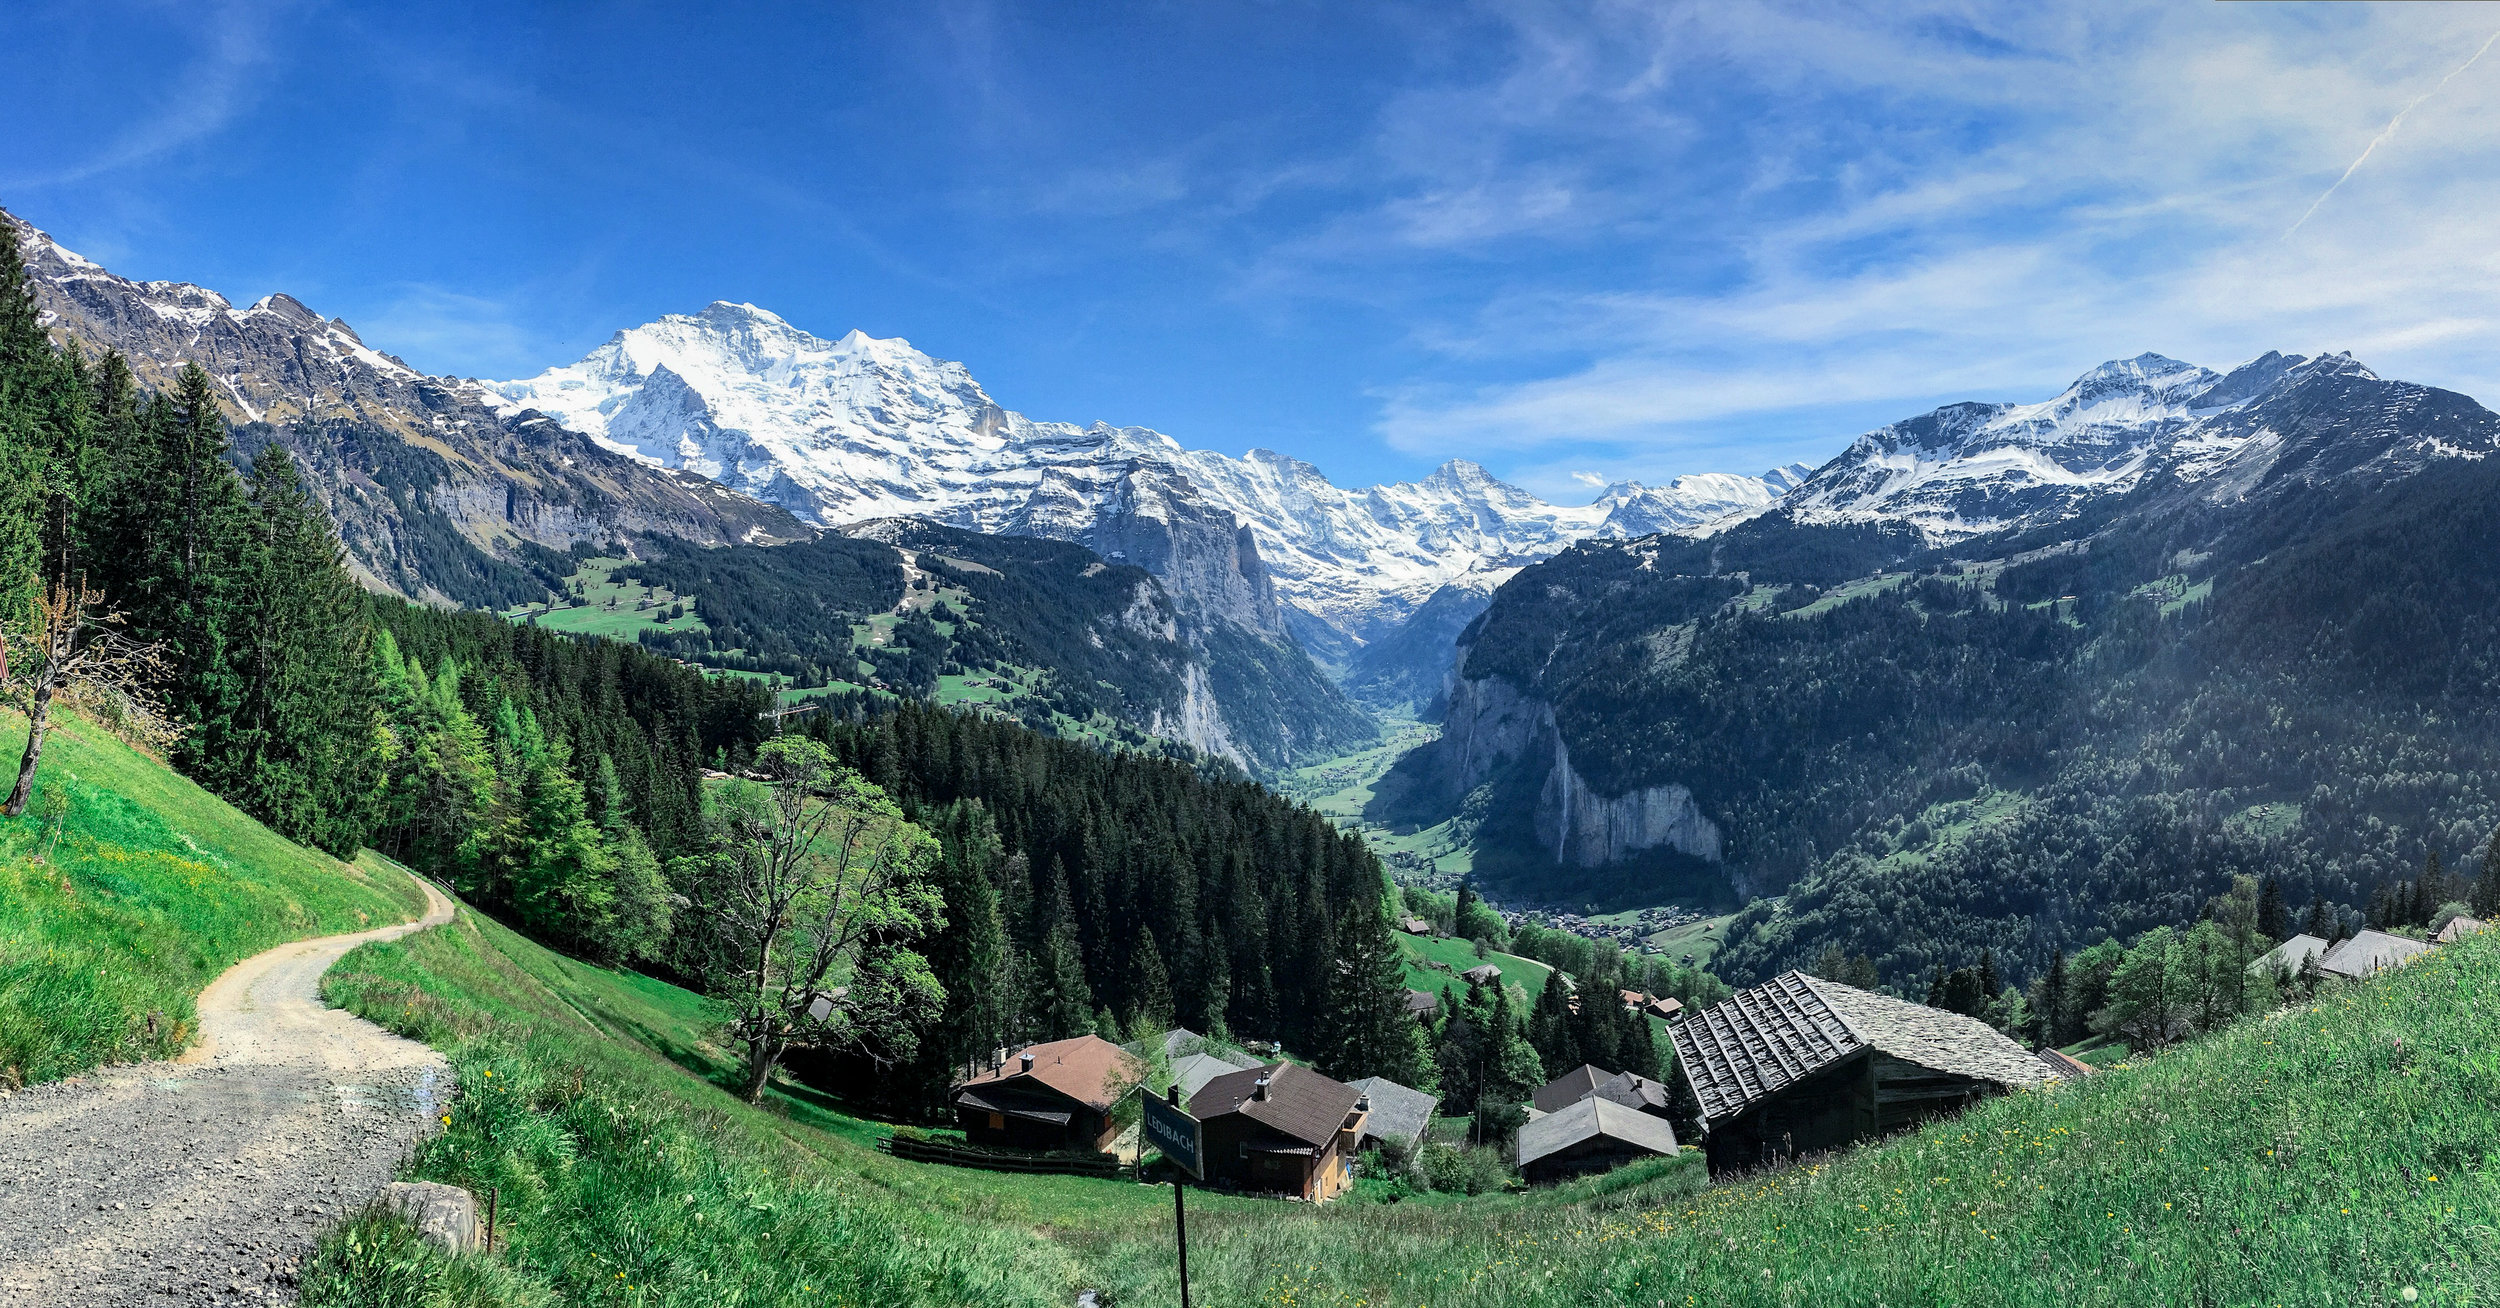 View looking back to Lauterbrunnen, from Wengen